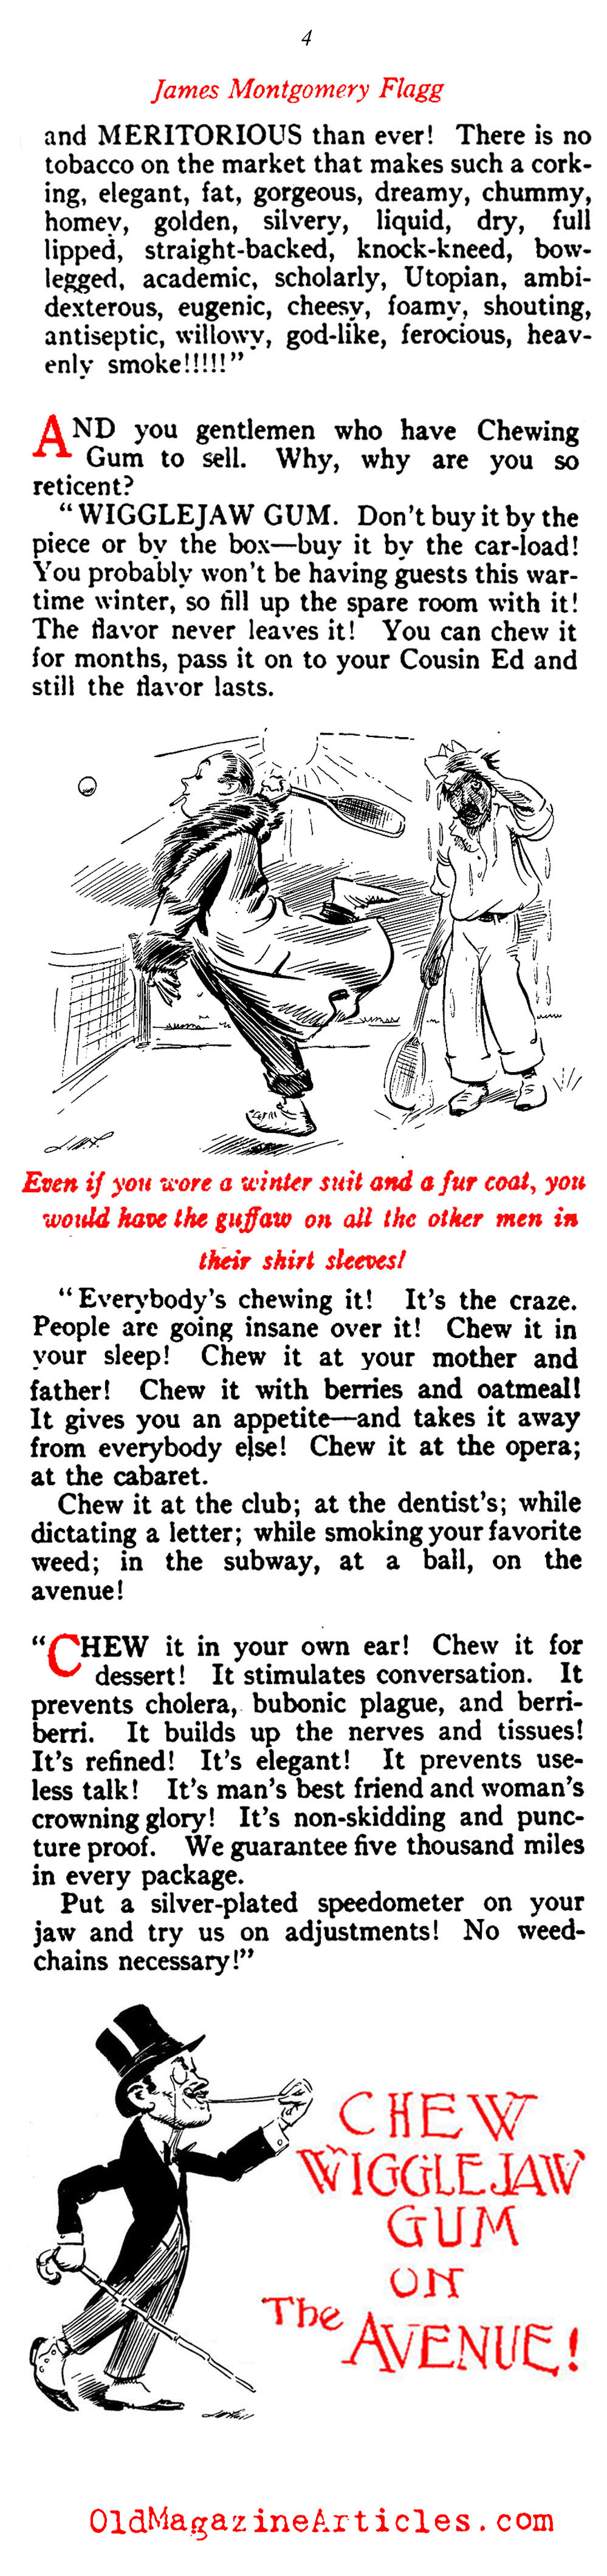 Mocking Ad Practices in the Early 20th Century (Vanity Fair Magazine, 1914)